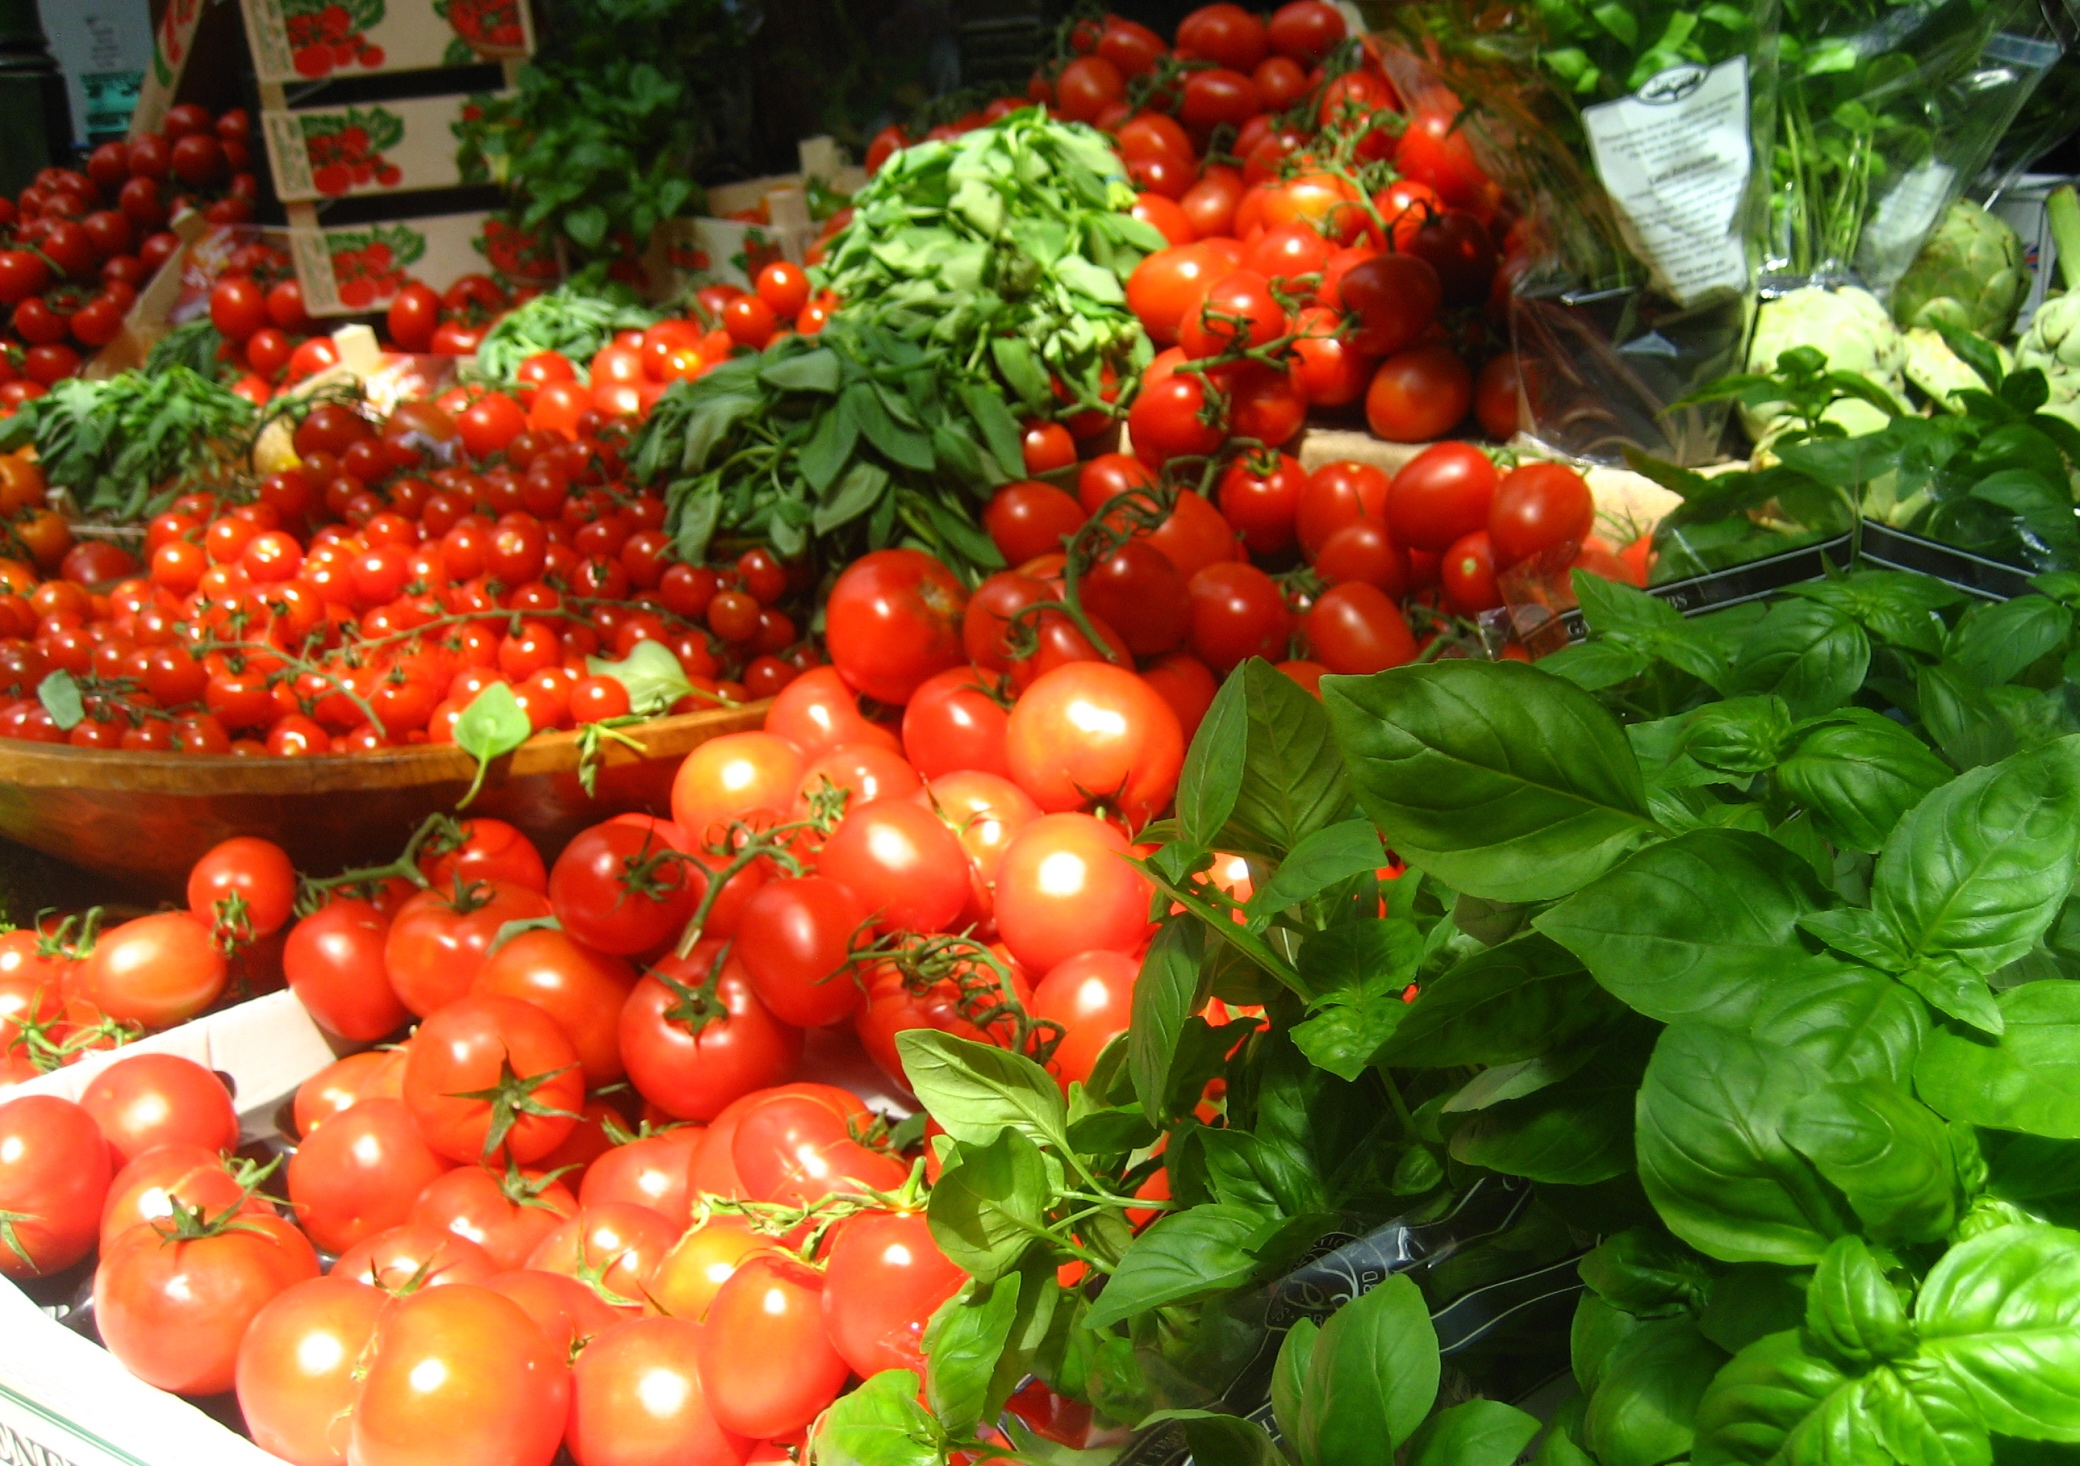 Plant Tomatoes and Basil Together To Repel Bugs